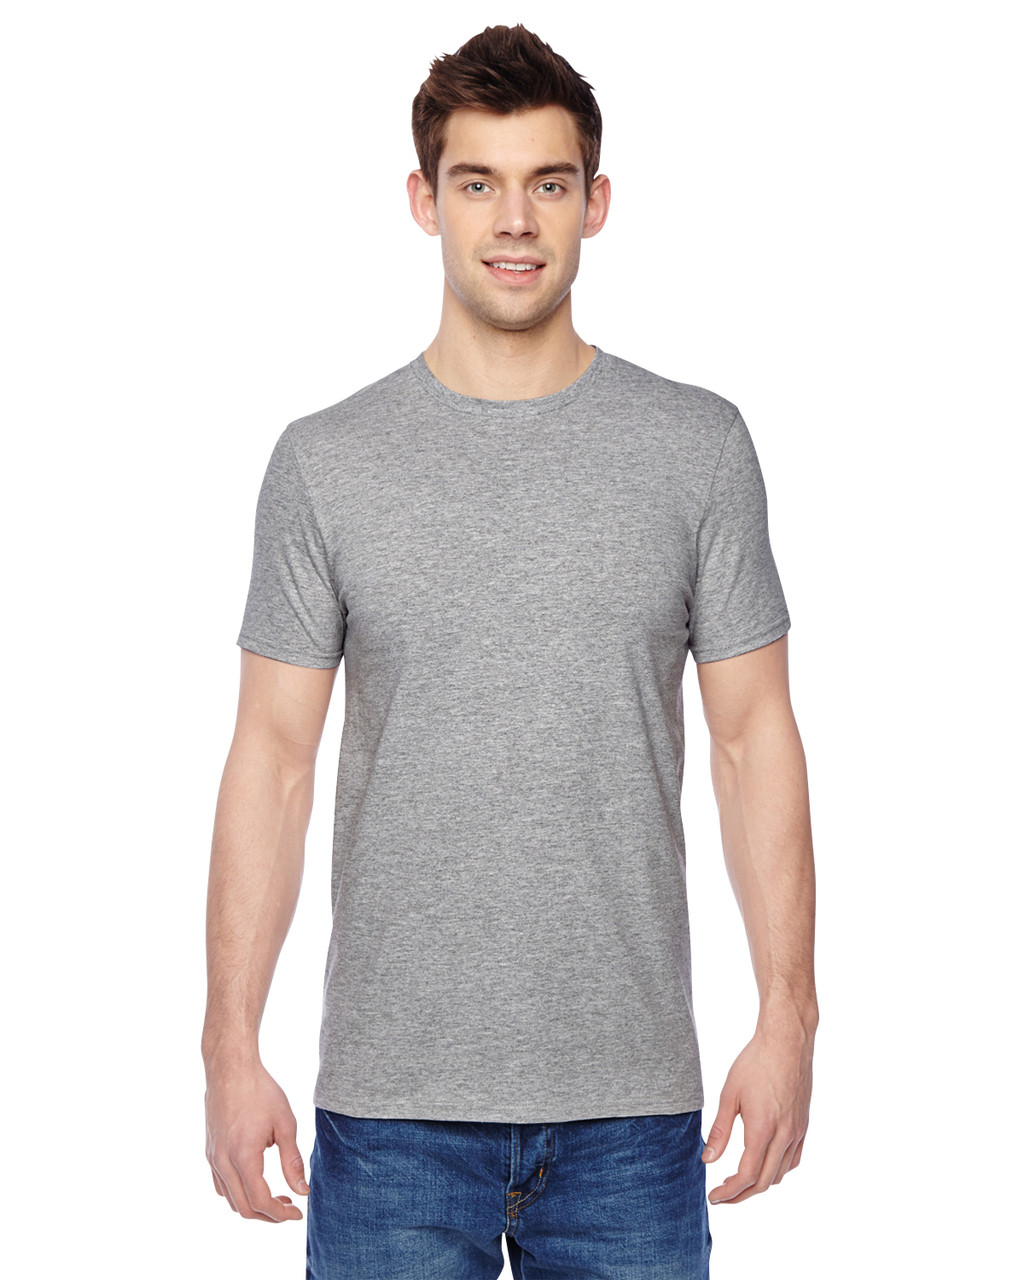 Athletic Heather - SF45R Fruit of the Loom Softspun Cotton T-Shirt | Blankclothing.ca